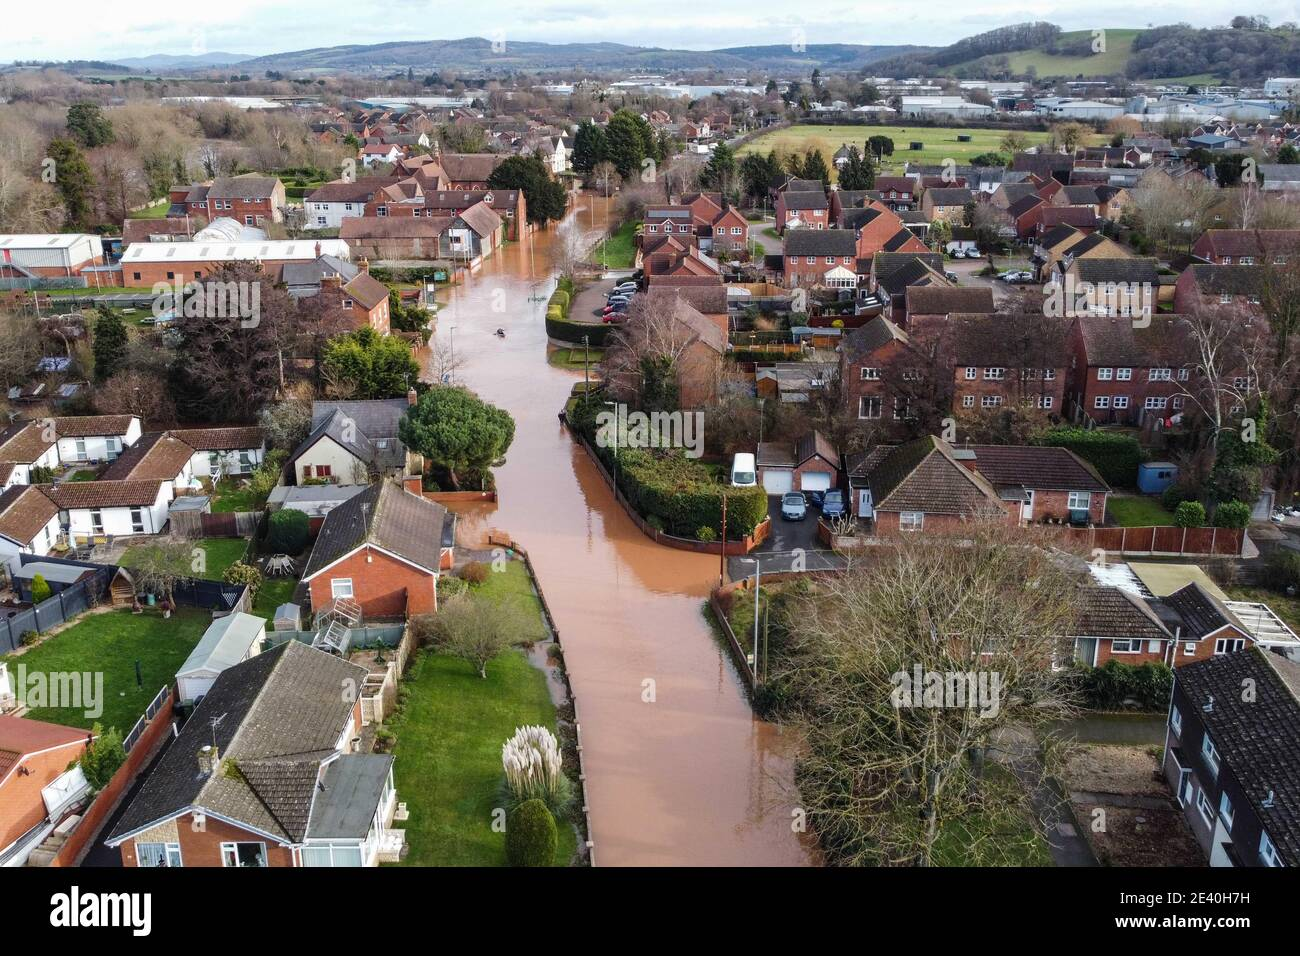 Hereford, Herefordshire, UK. 21st Jan, 2021. Flooding hit parts of Hereford today after Storm Christoph brought heavy rain to the region. The River Wye burst its banks completely flooding Home Lacy Road with only a Kayaker being able to negotiate the road turned river. Pic by Credit: Sam Holiday/Alamy Live News Stock Photo